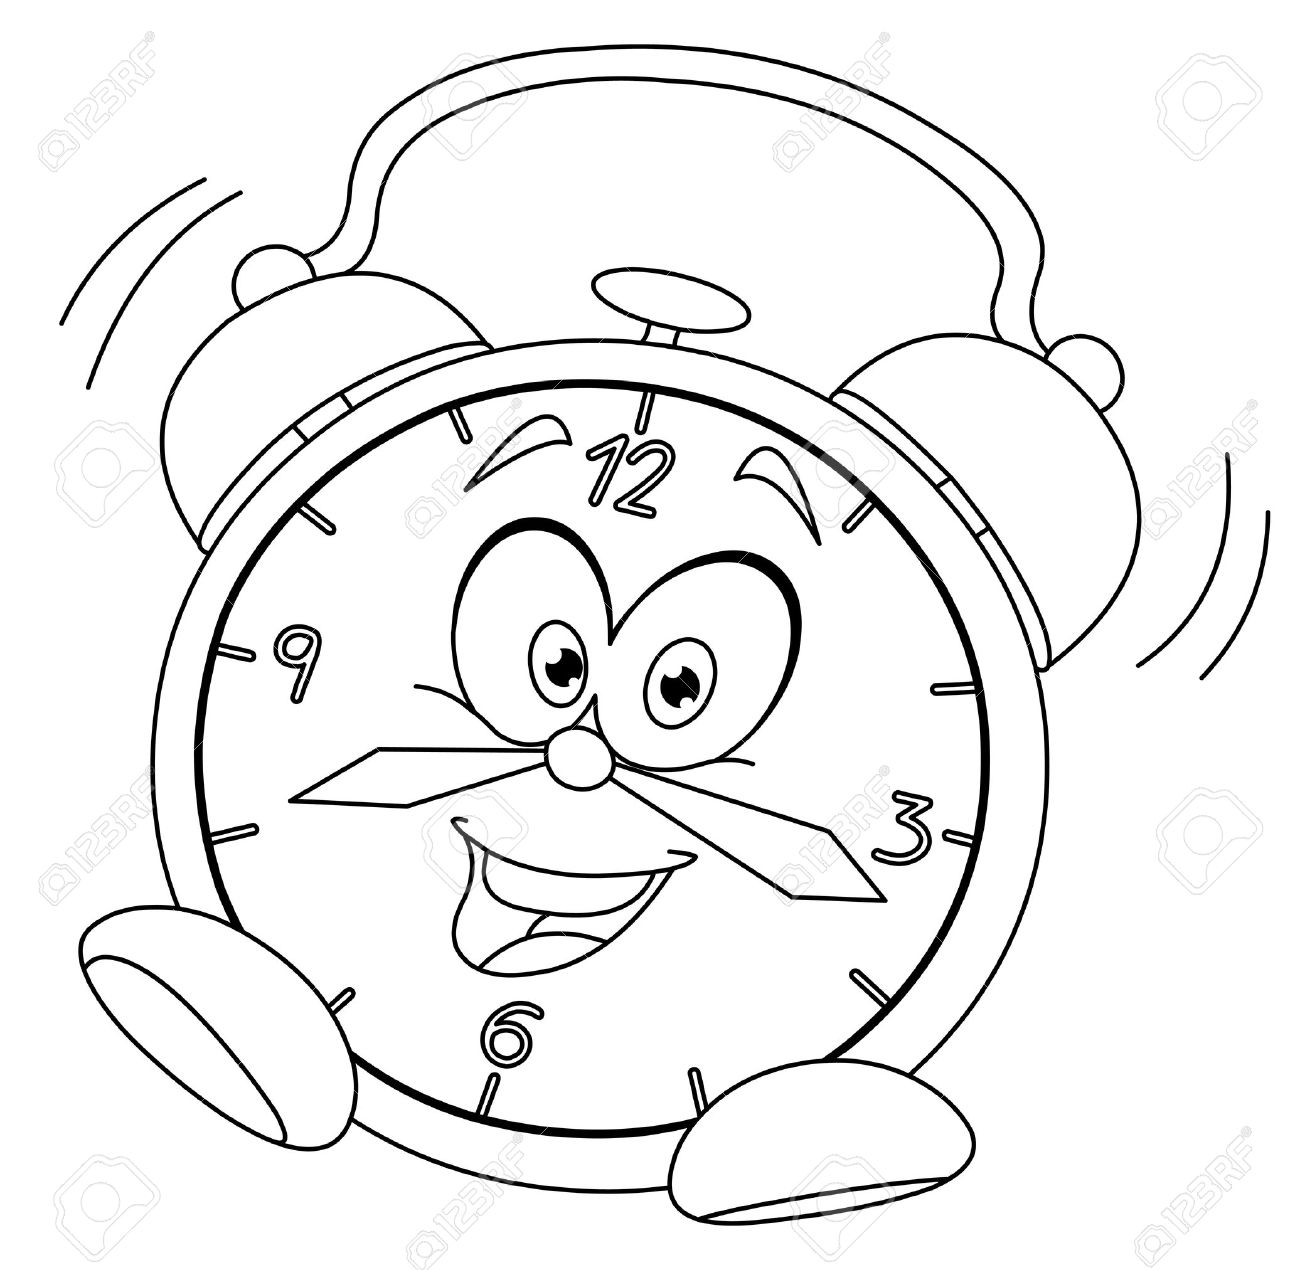 Outlined Cartoon Alarm Clock Vector Illustration Coloring Page Stock